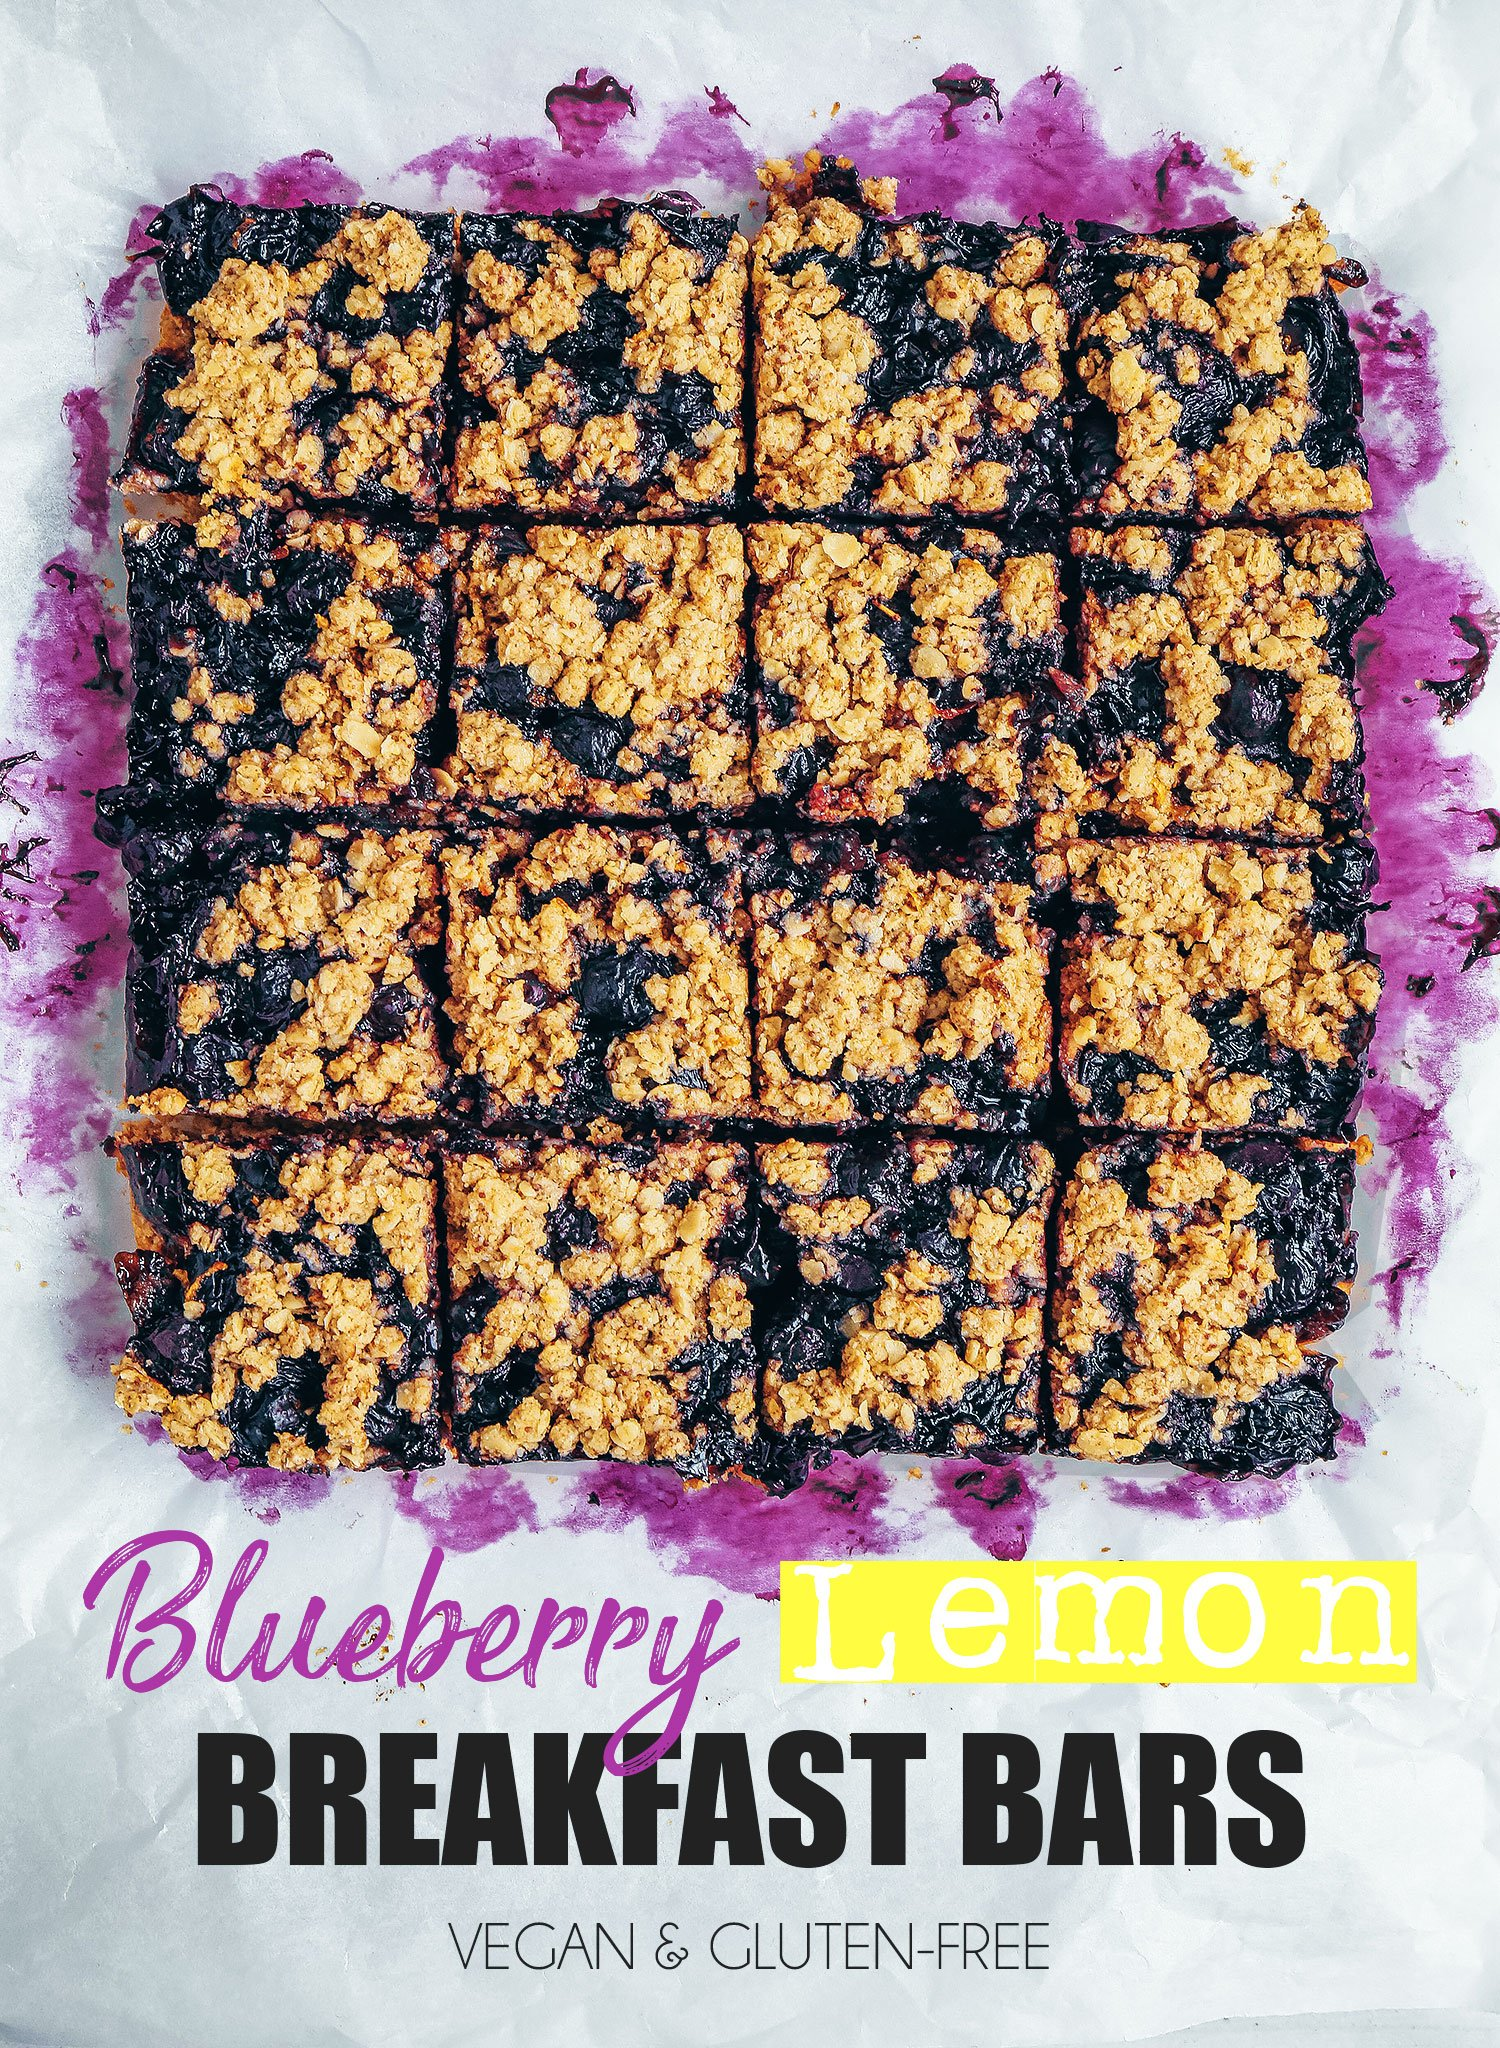 Blueberry Lemon Breakfast Bars